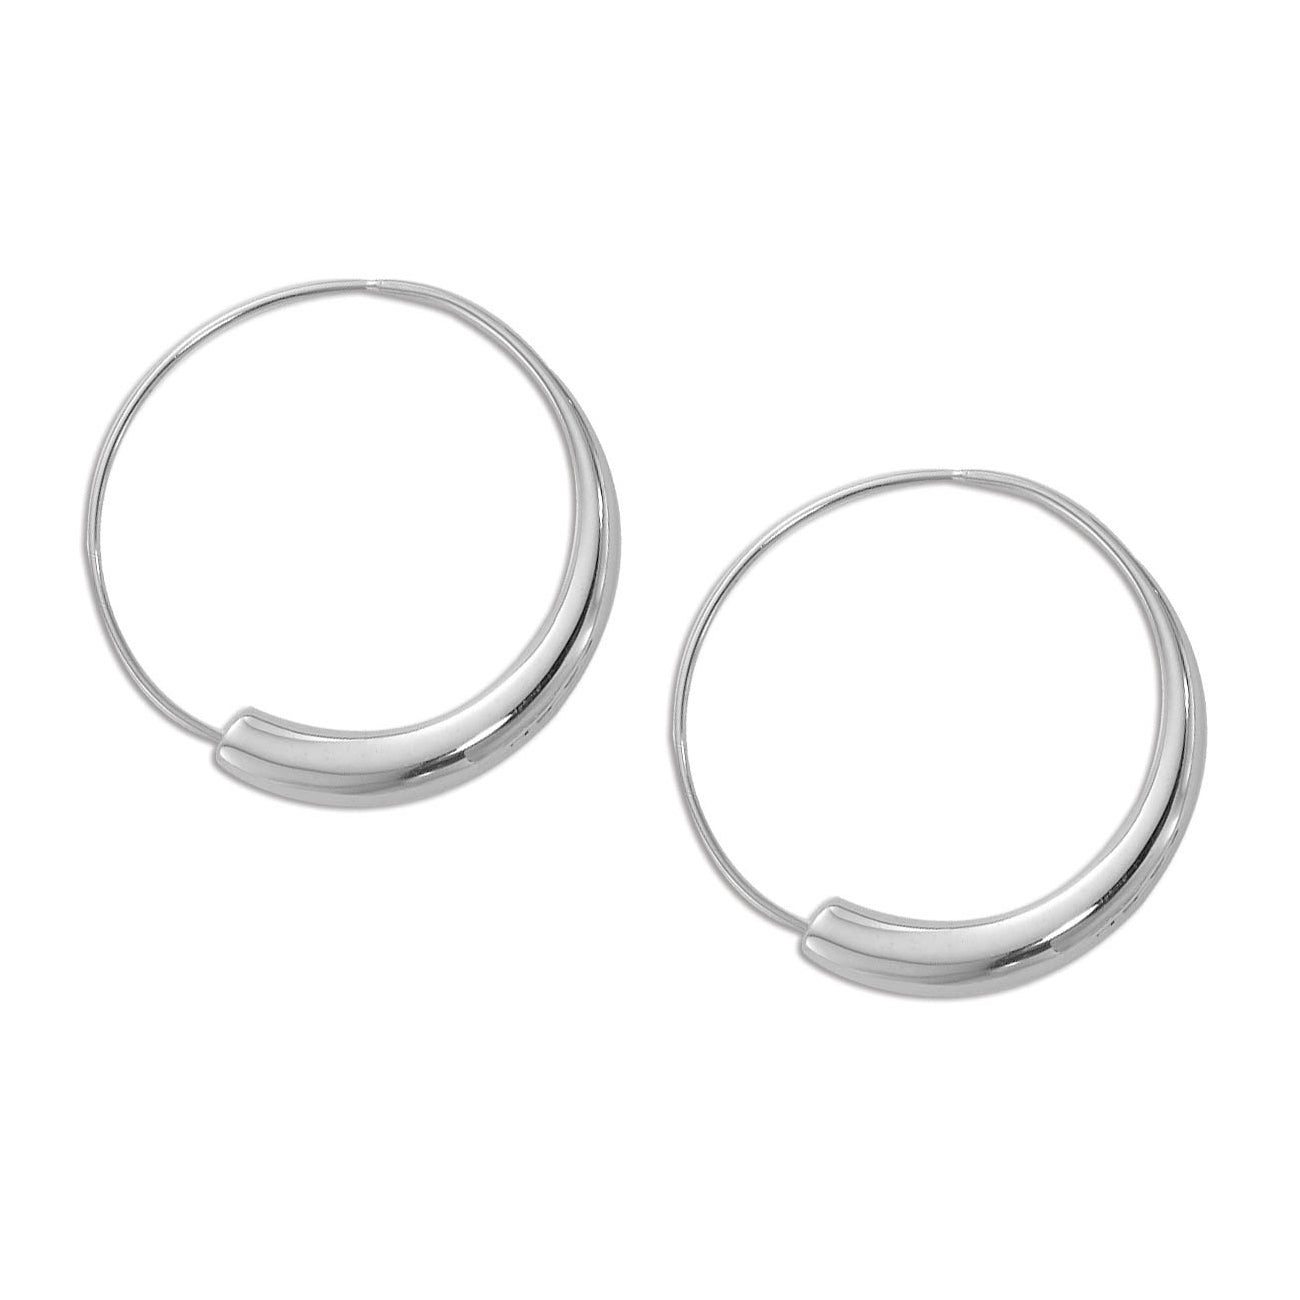 Graduated Endless Hoop Earrings, Sterling Silver